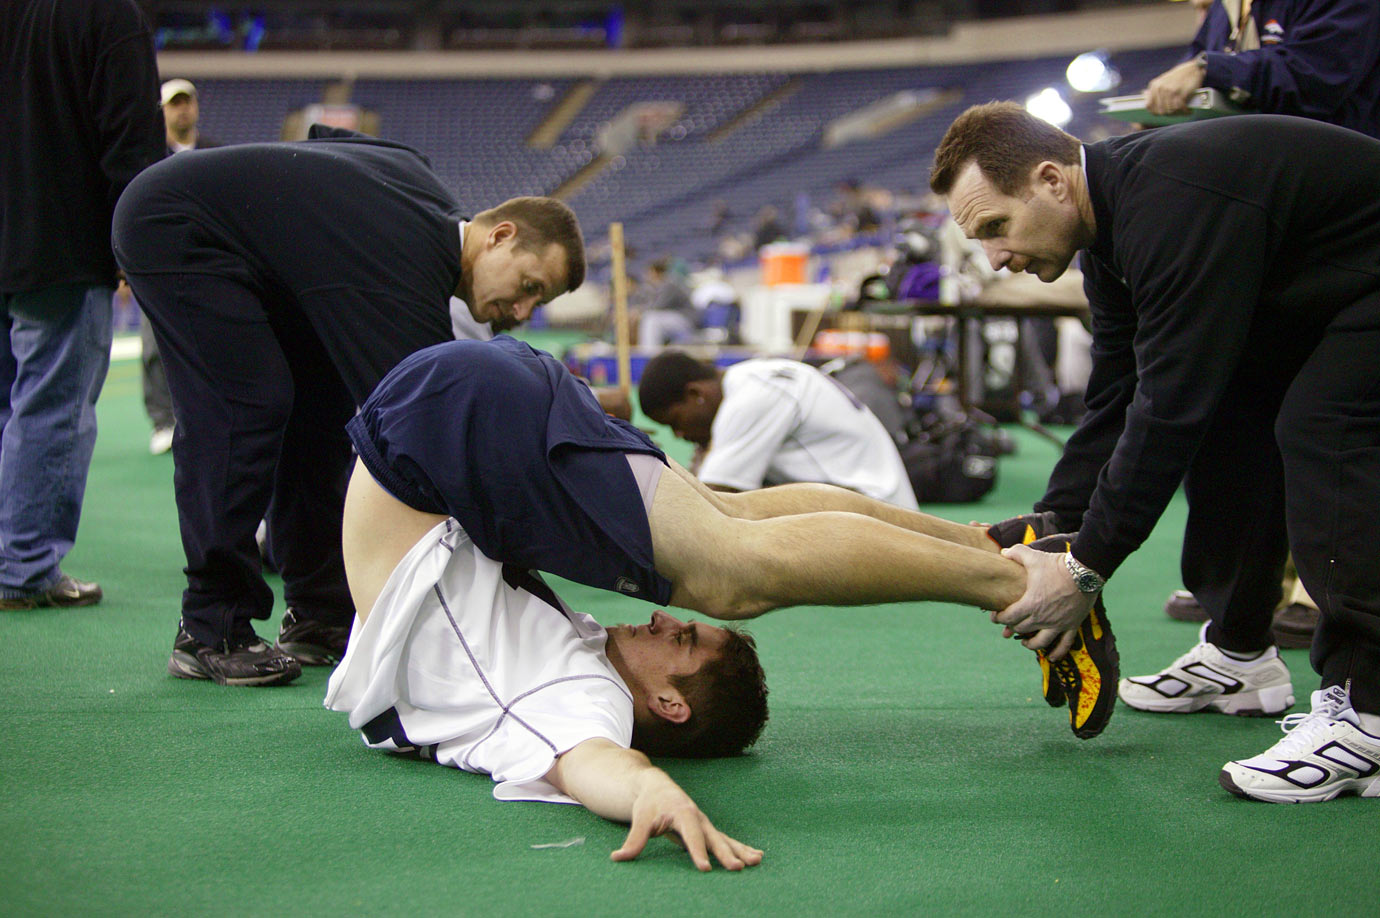 Feb. 27, 2005 — NFL Scouting Combine